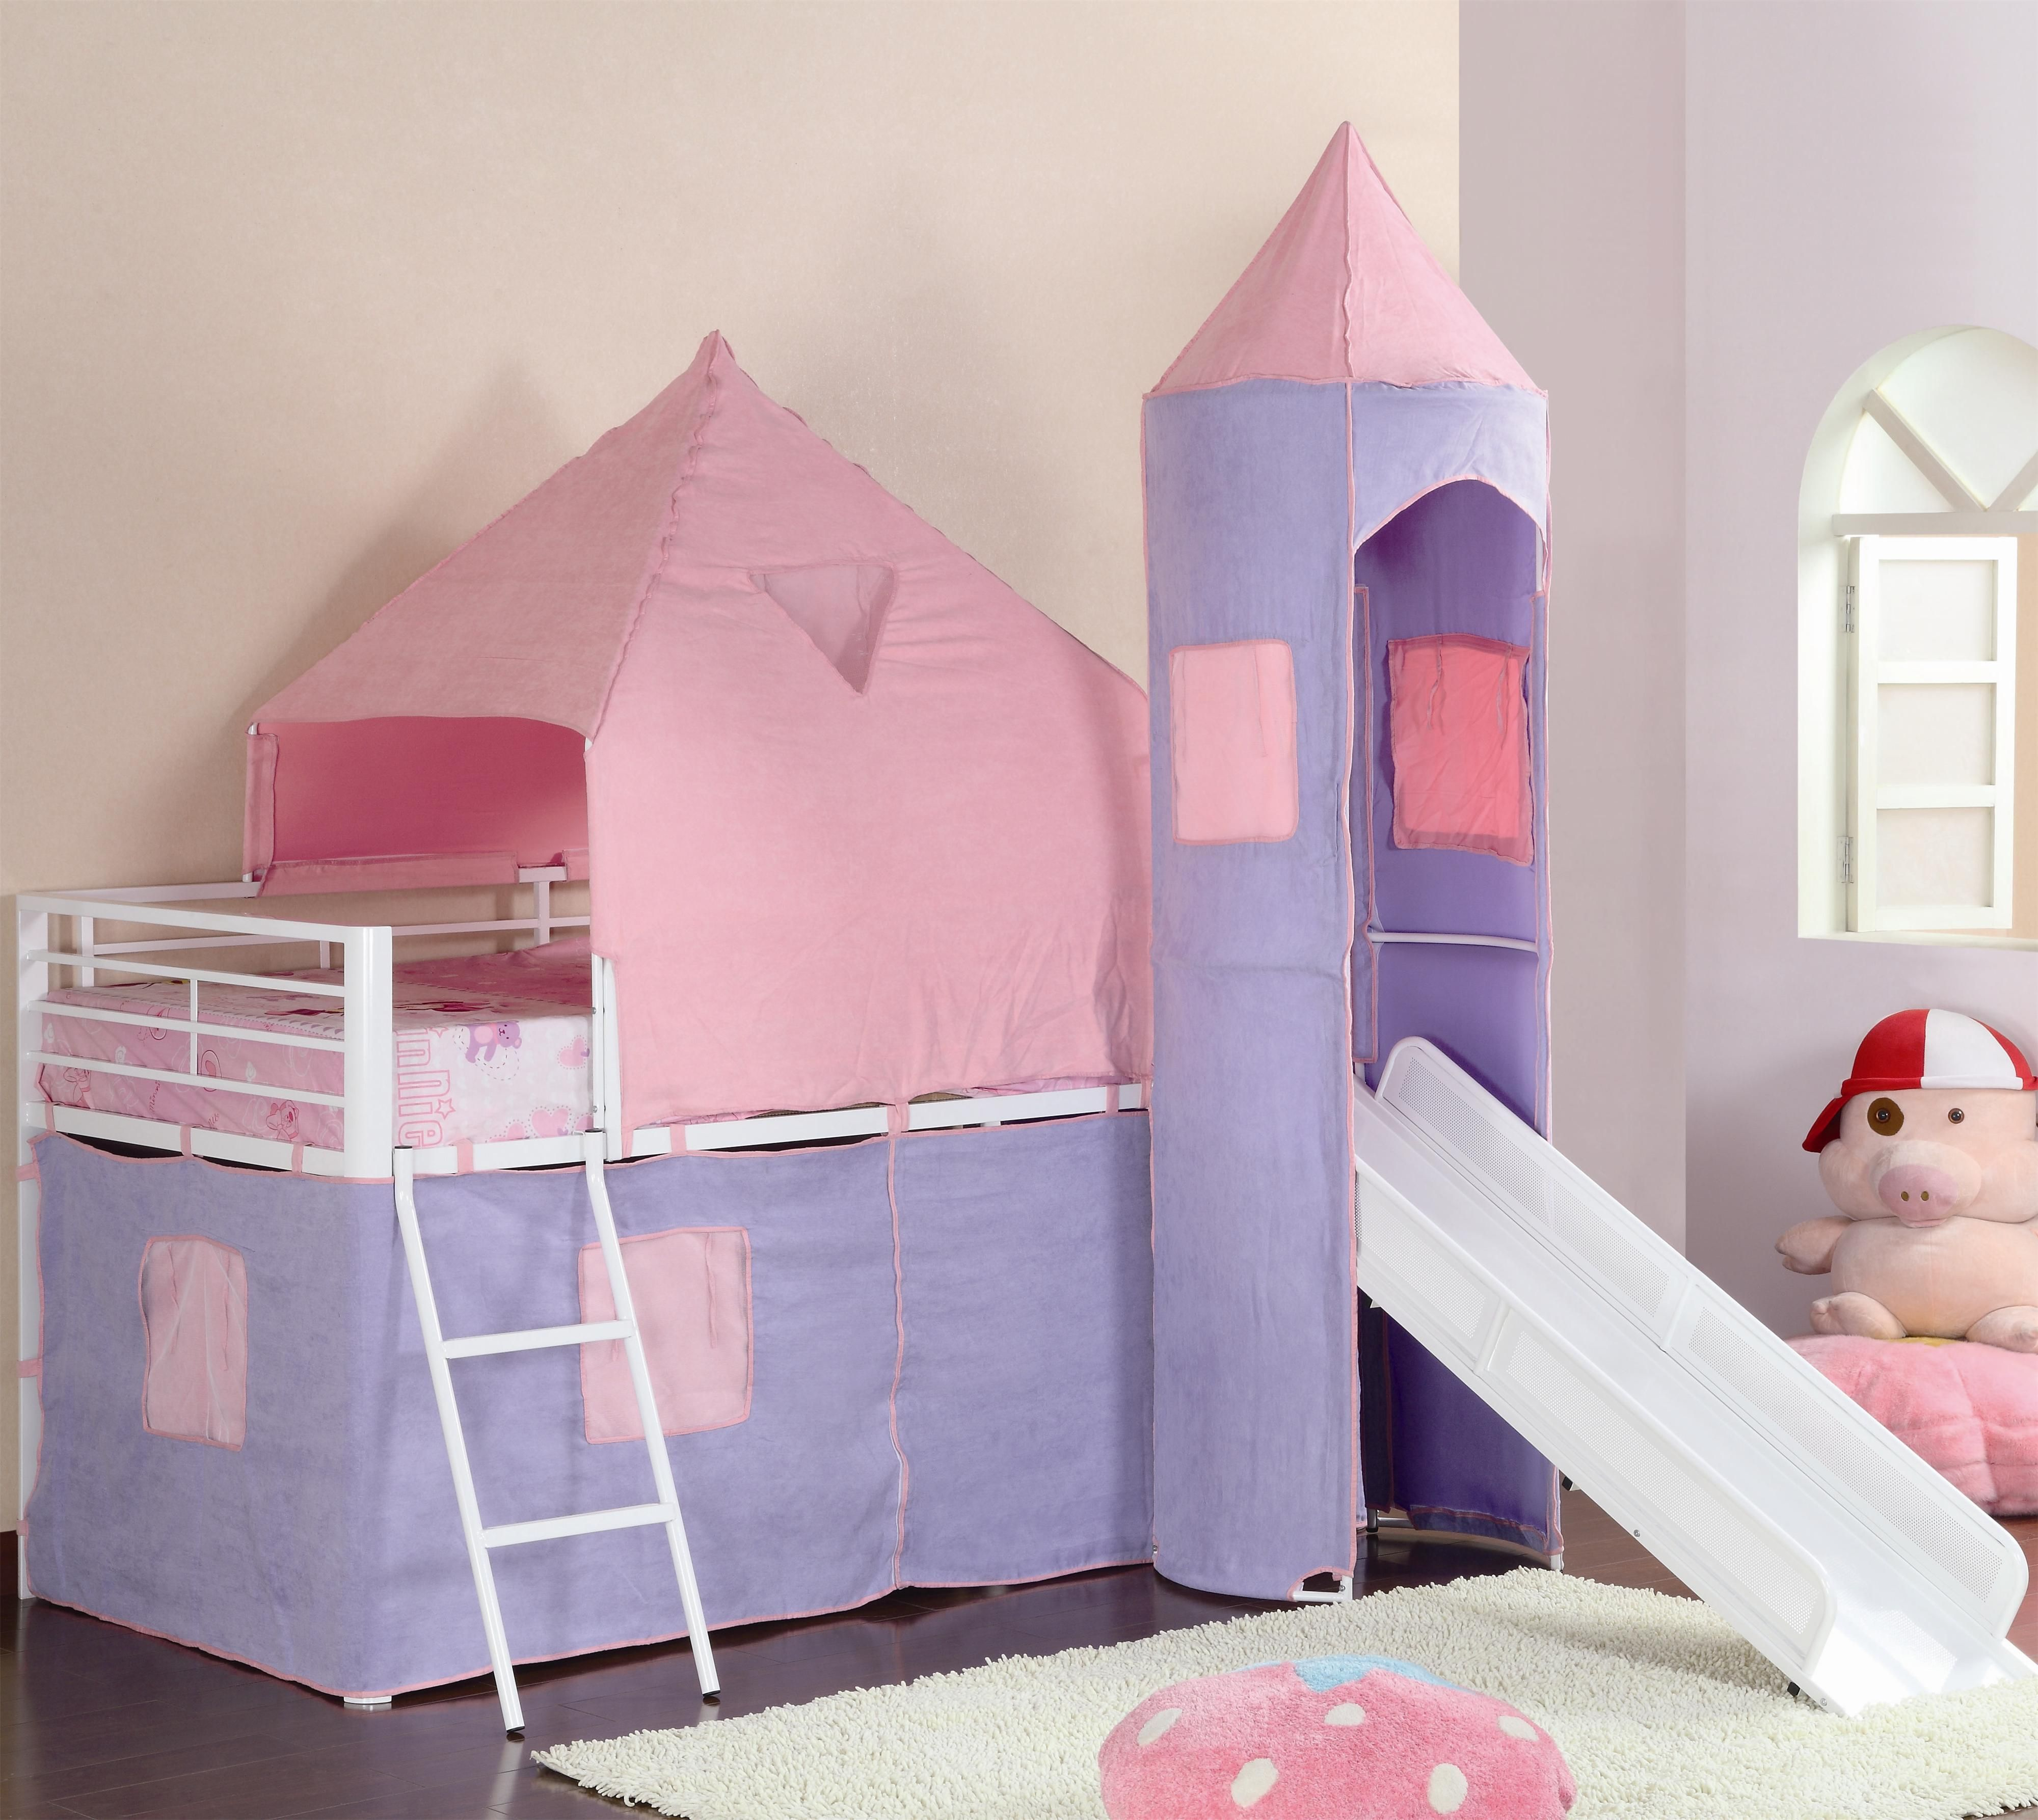 Amusing Castle Bunk Beds For Girls Rooms With Dolls Also